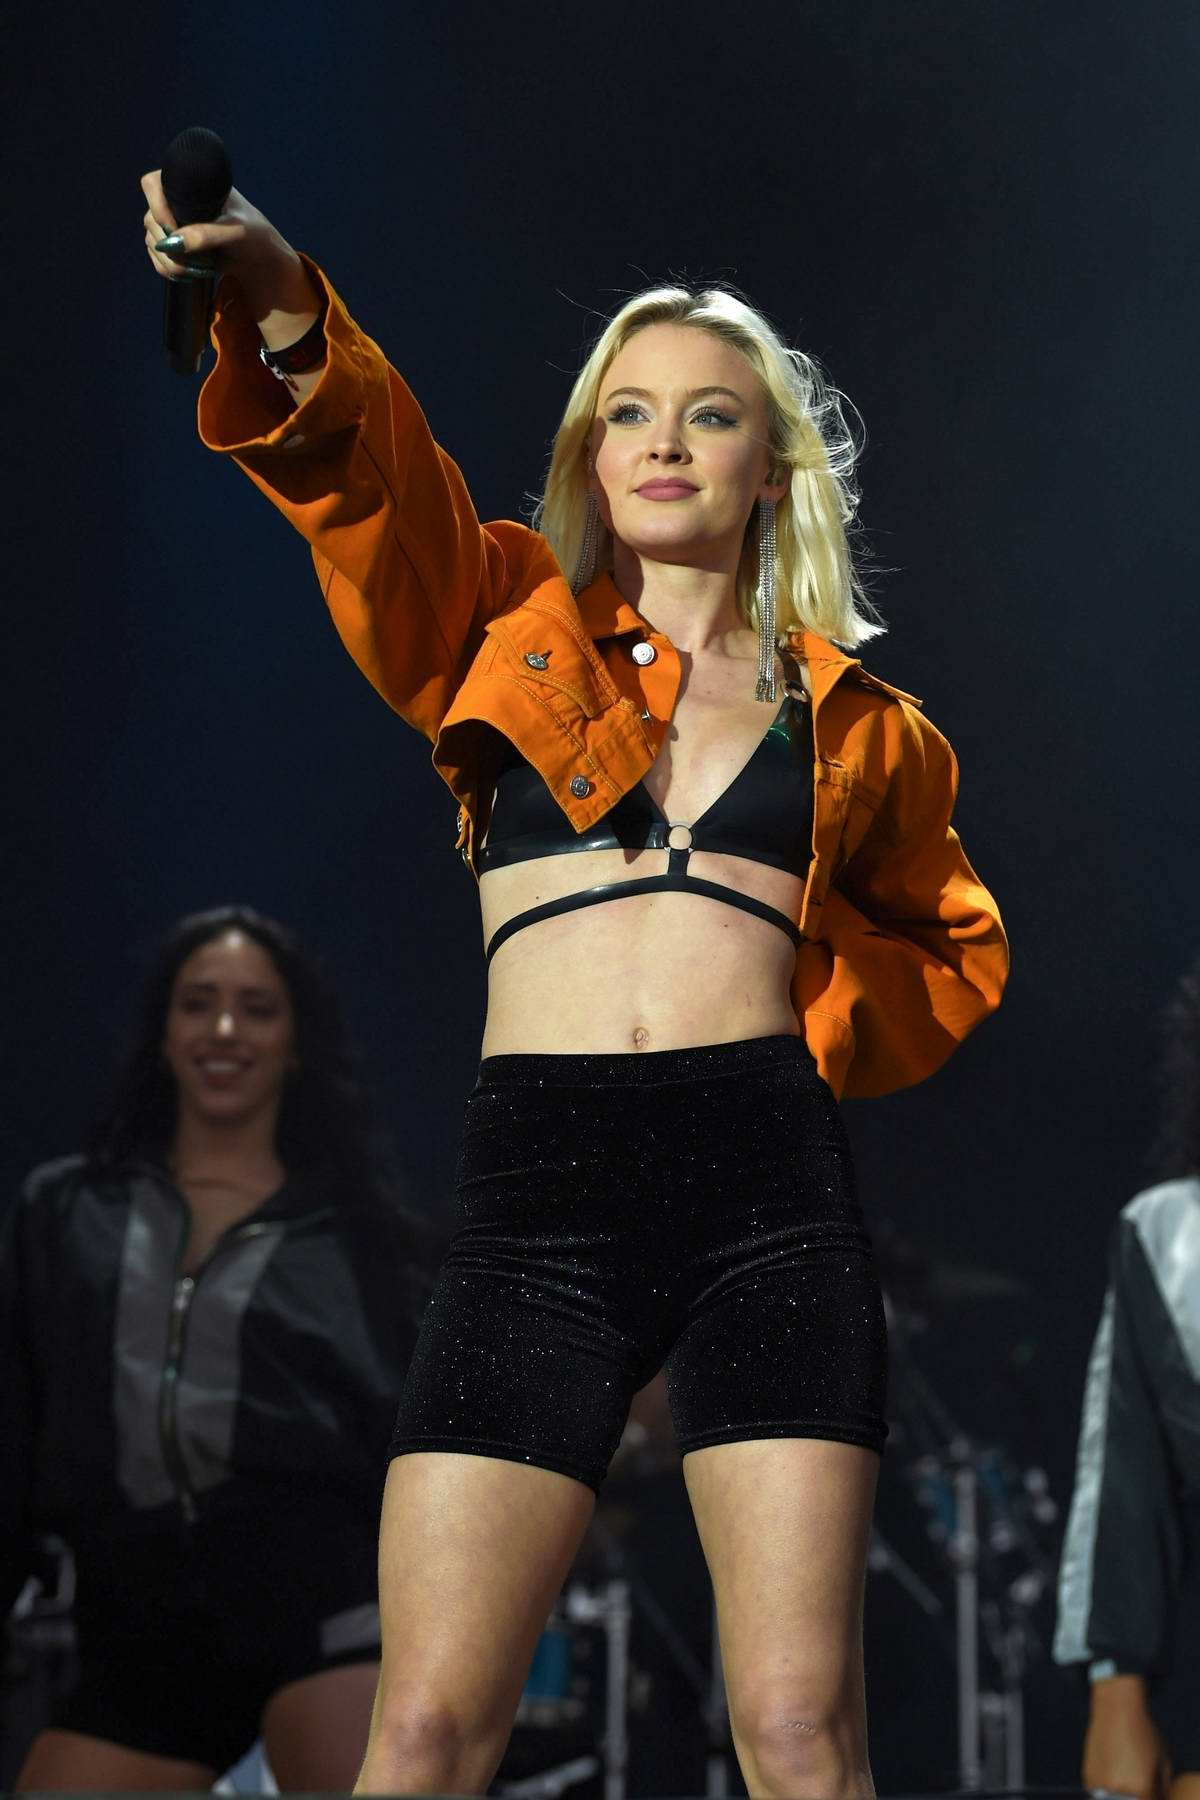 Zara Larsson performs onstage at Fusion Festival in Liverpool, UK